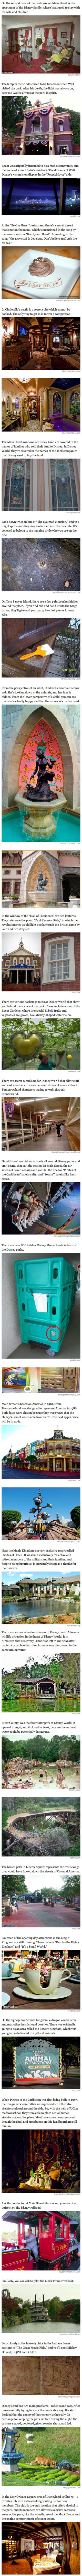 25 secret things most people don't know about Disney parks. The next time that you visit Disney, knowing these secrets will give you an entirely new perspective.: